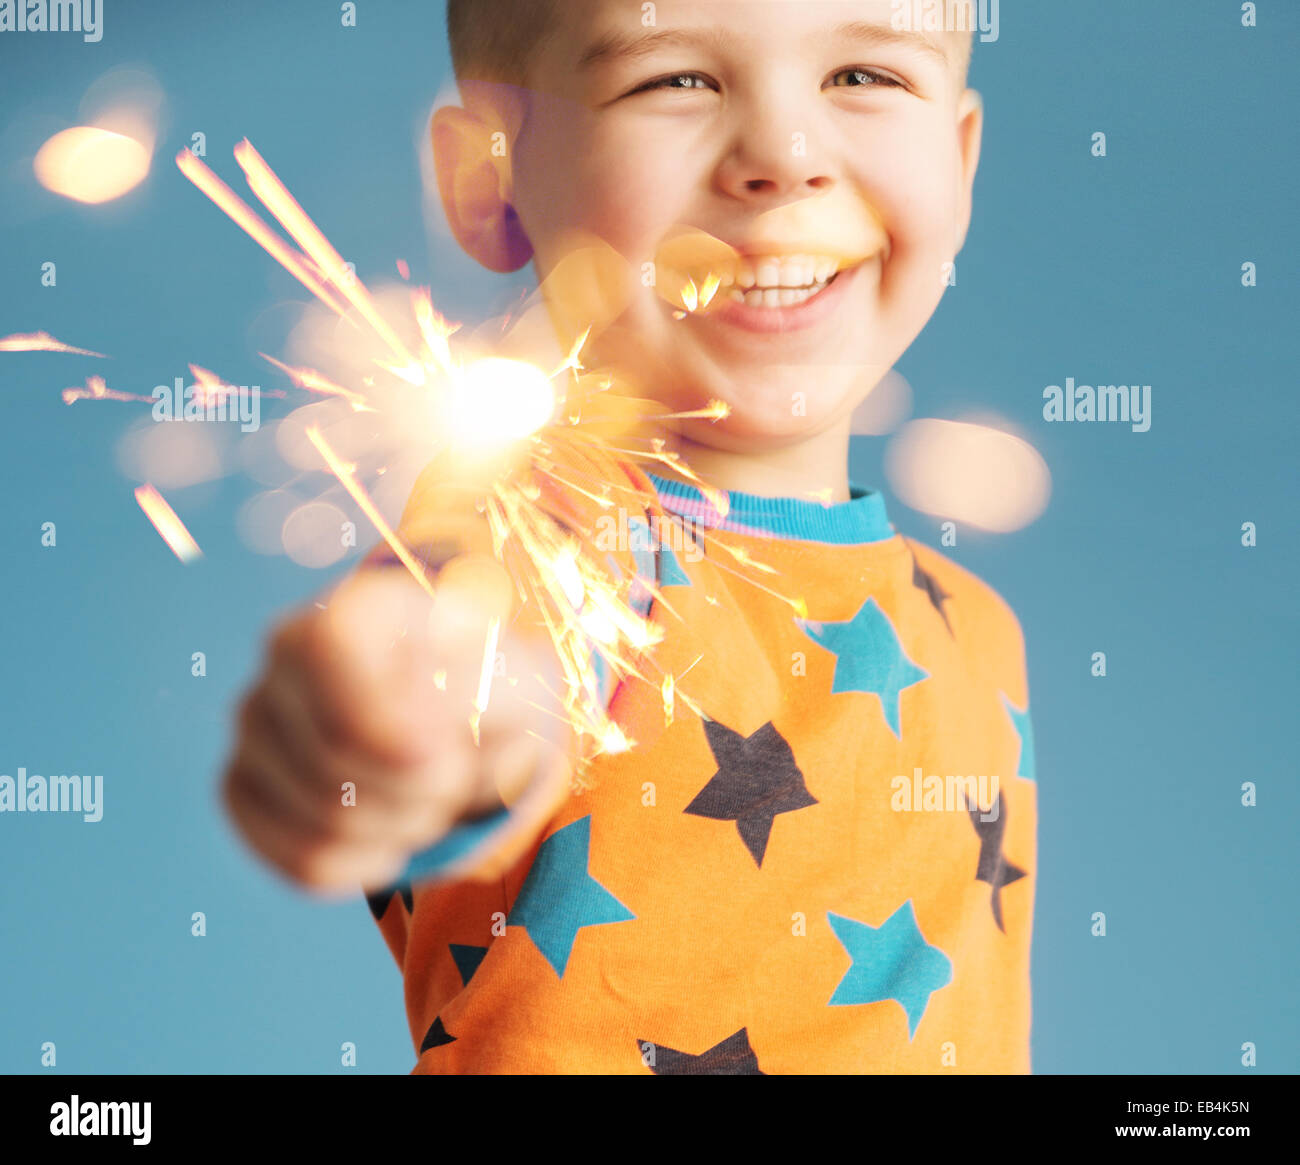 Peu d'homme tenant un sparkler Photo Stock